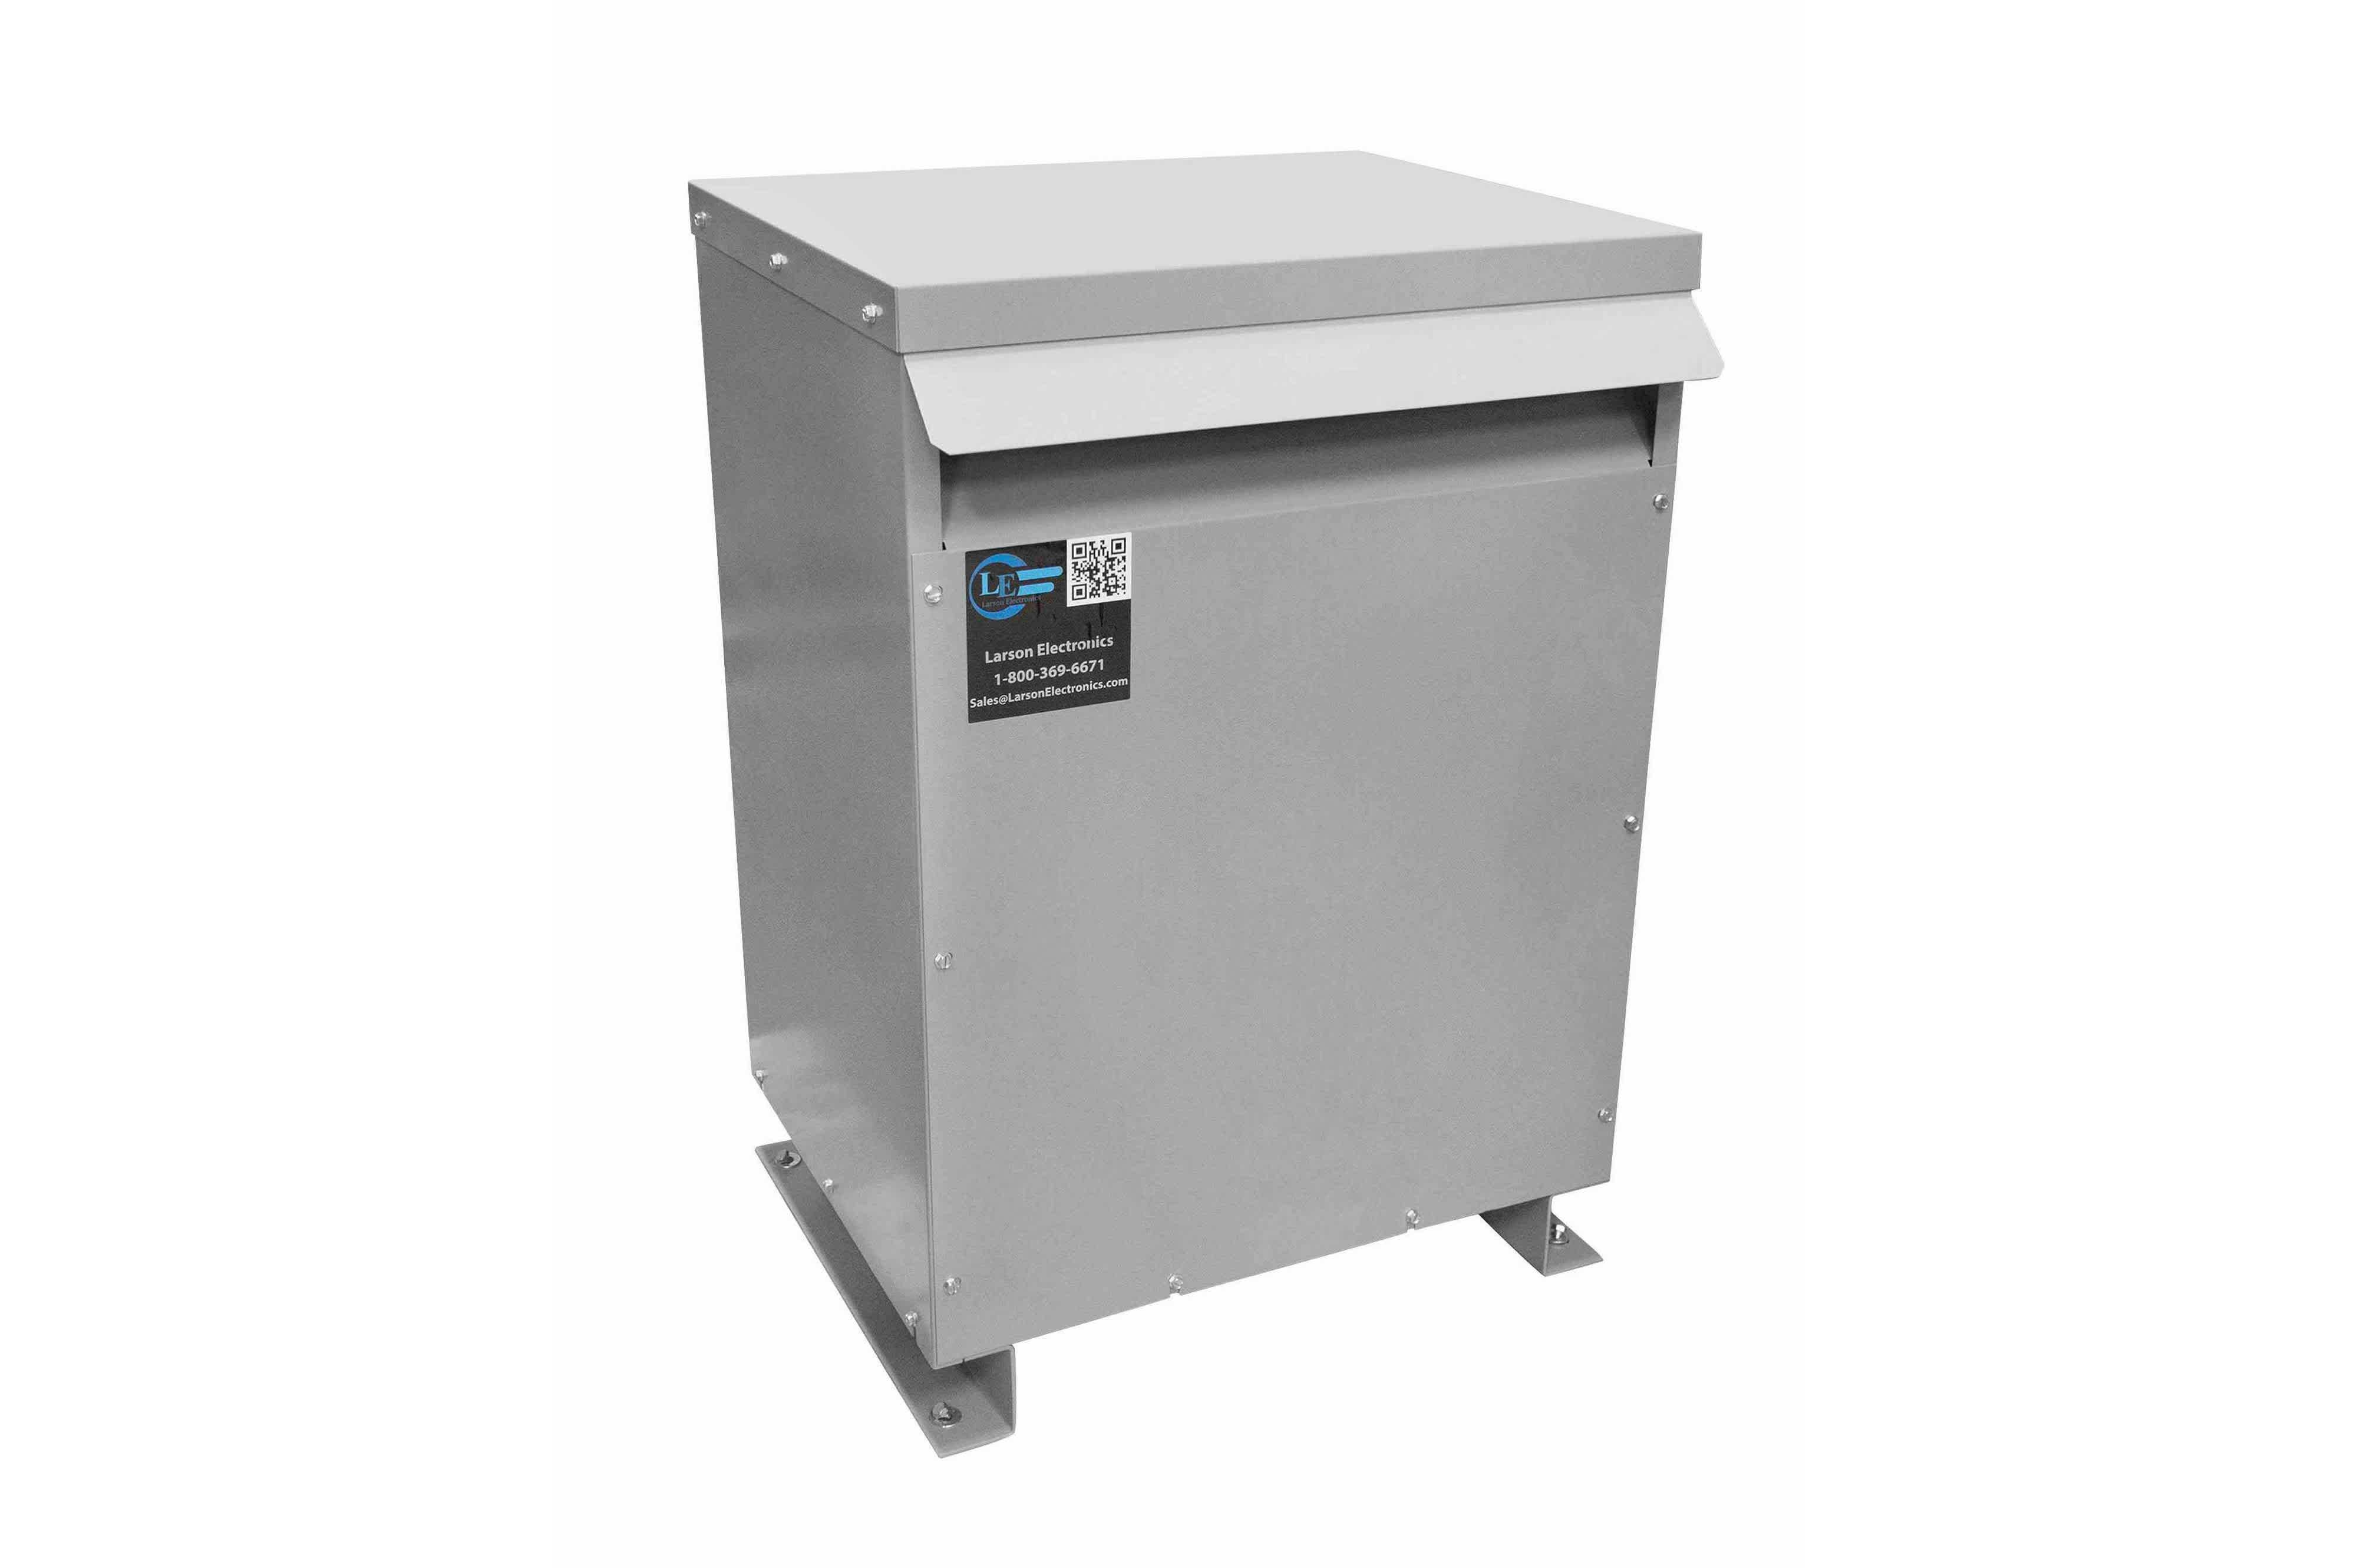 26 kVA 3PH Isolation Transformer, 440V Delta Primary, 240 Delta Secondary, N3R, Ventilated, 60 Hz